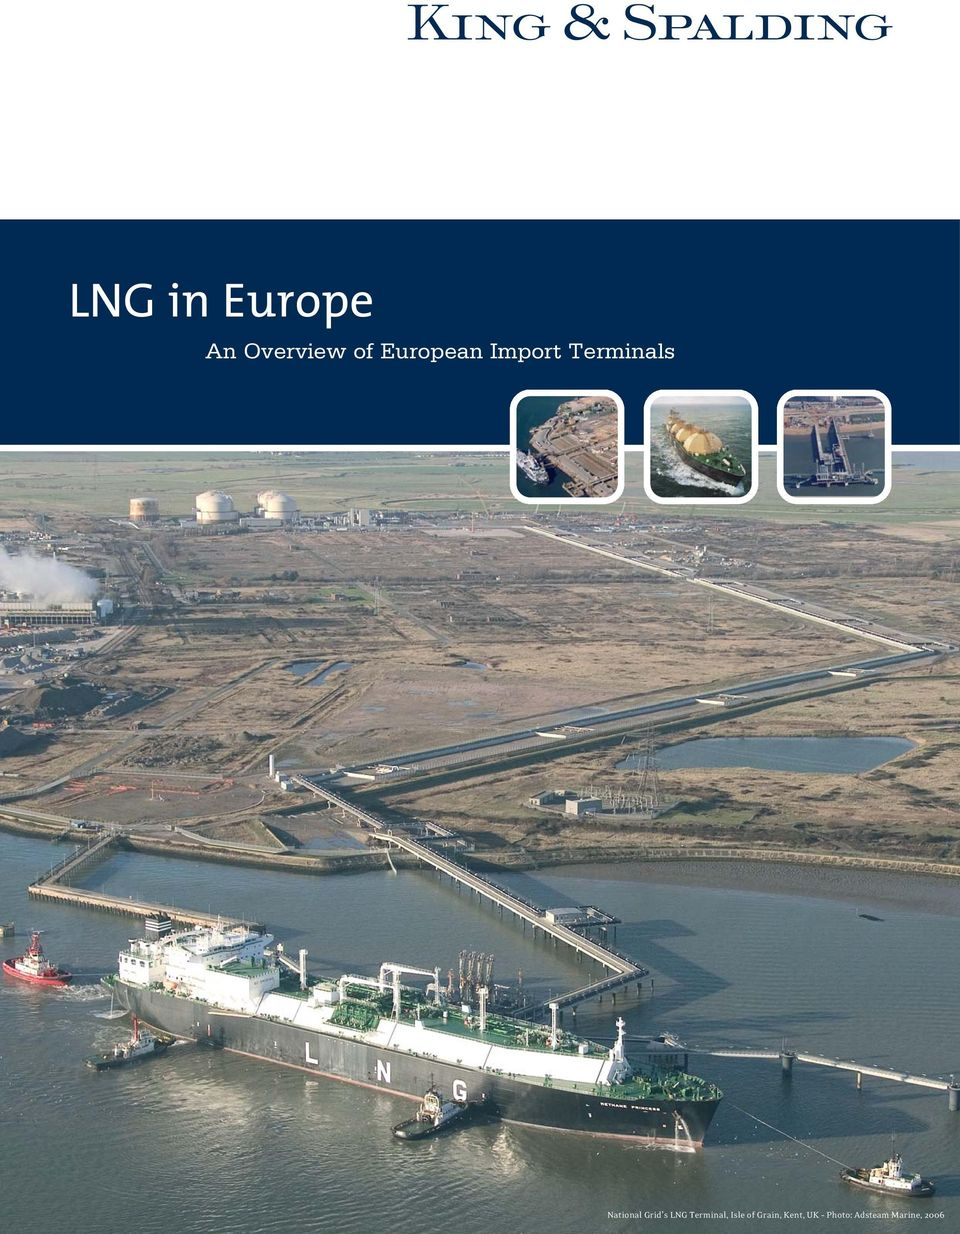 National Grid s LNG Terminal,